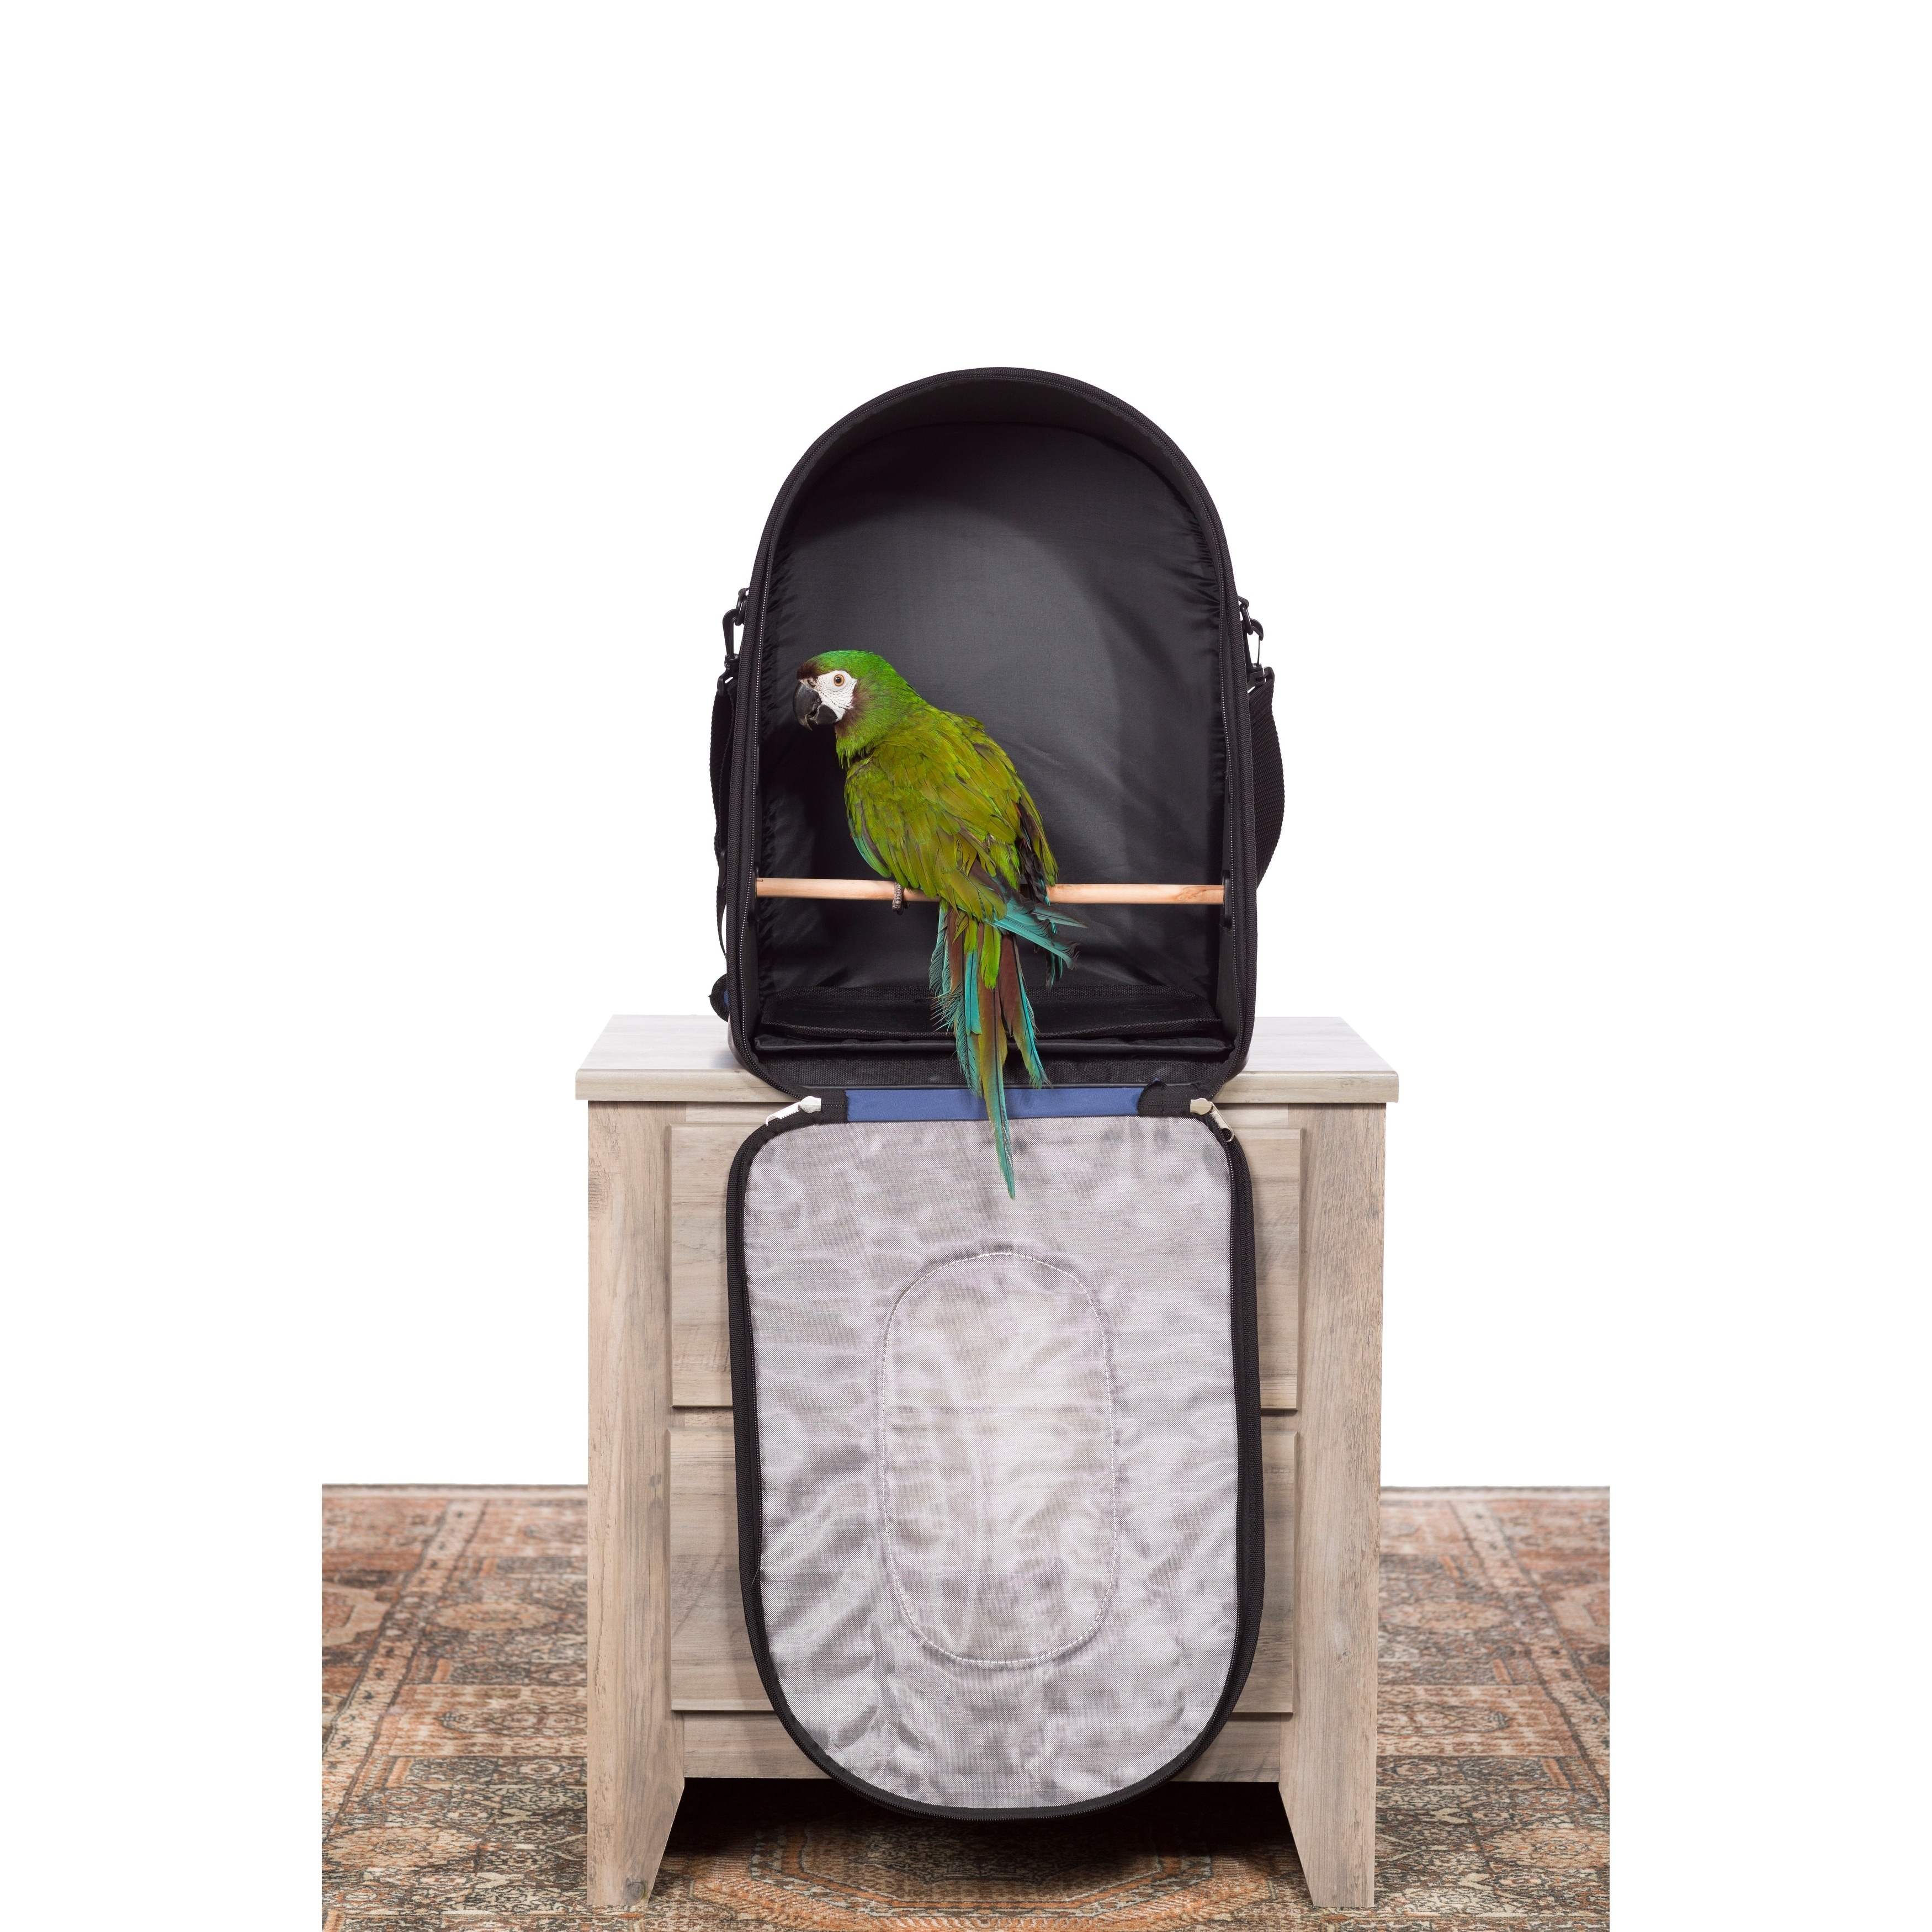 Prevue Pet Products Backpack Bird Travel Carrier With Perch 1311 Overstock 27175925